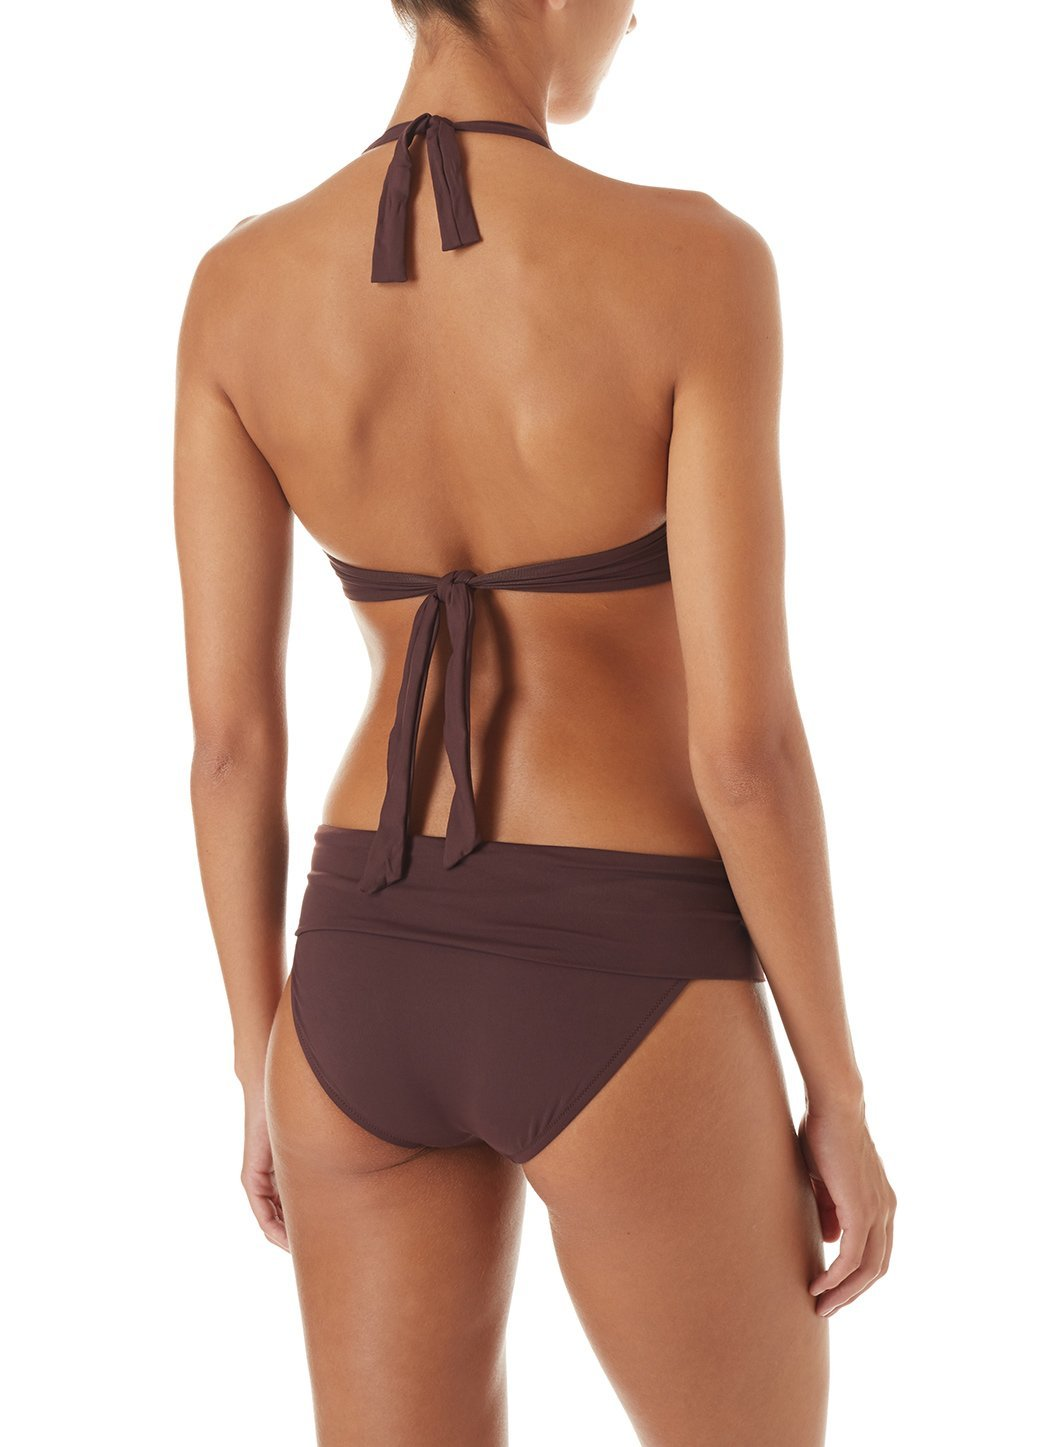 exclusive provence walnut halterneck supportive bikini 2019 B